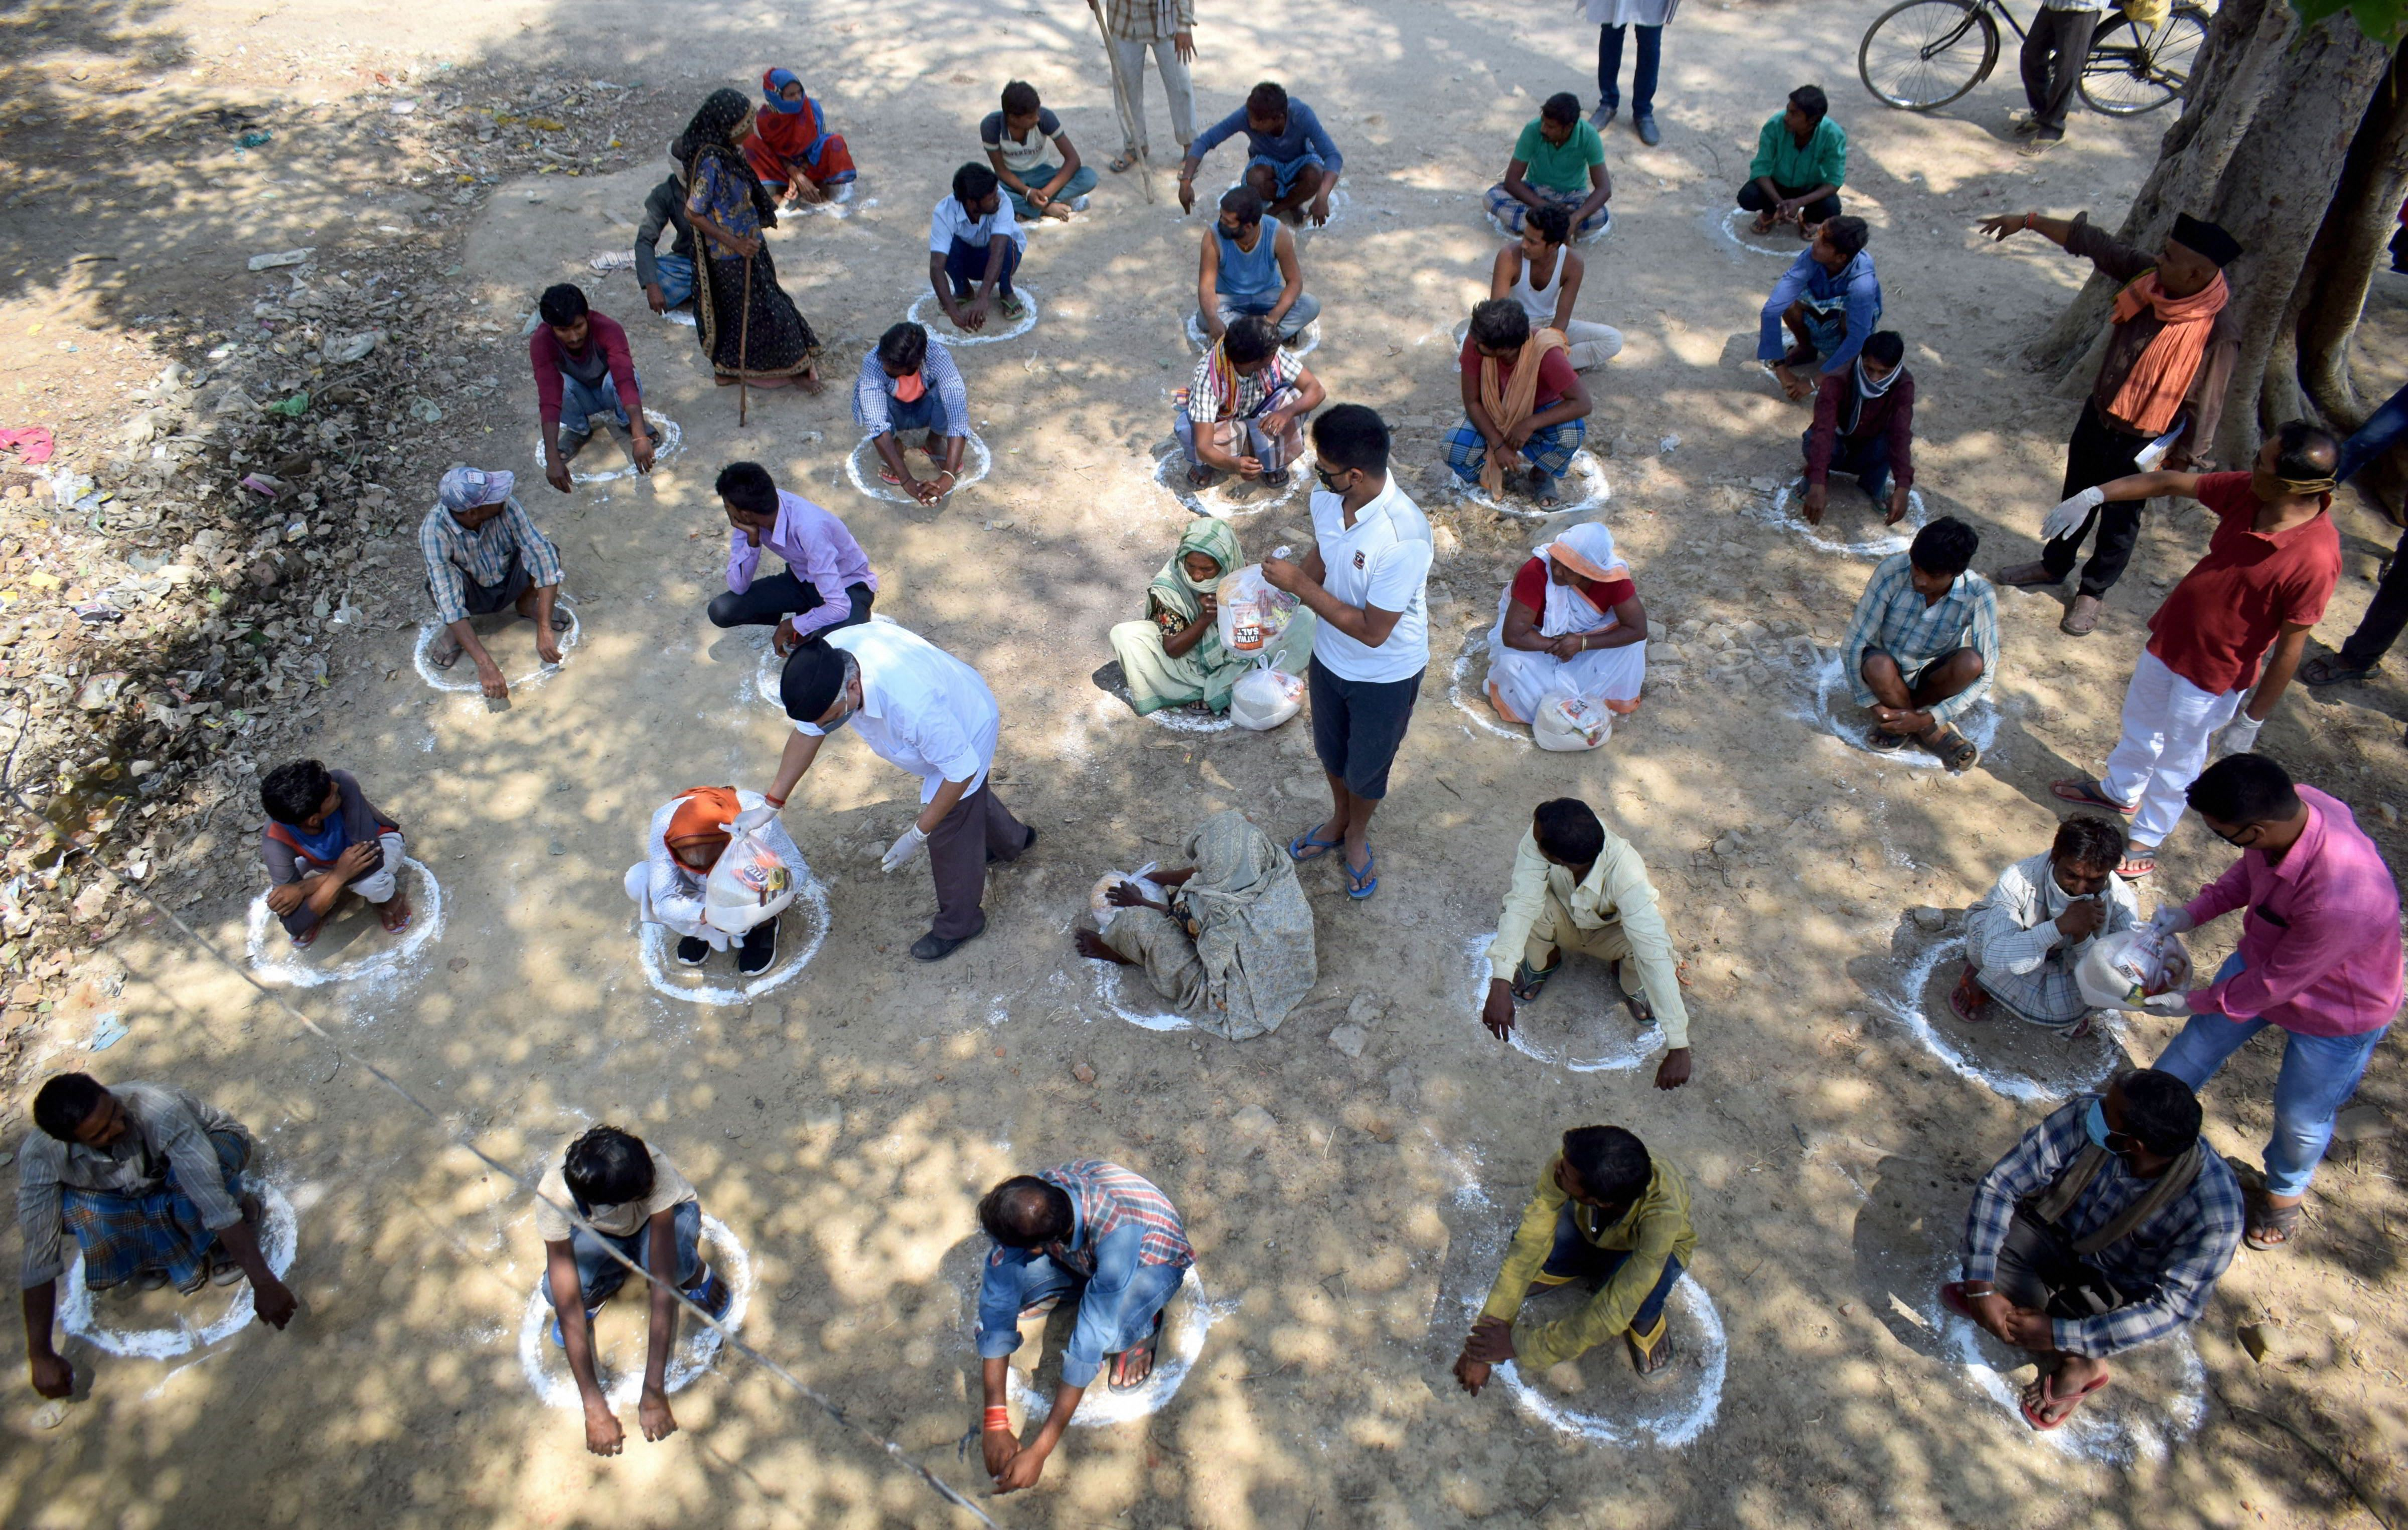 Seva Bharati volunteers distribute groceries among needy people sitting in painted circles to maintain social distancing during a nationwide lockdown in the wake of coronavirus pandemic, at a village in Prayagraj, Wednesday, April 22, 2020.